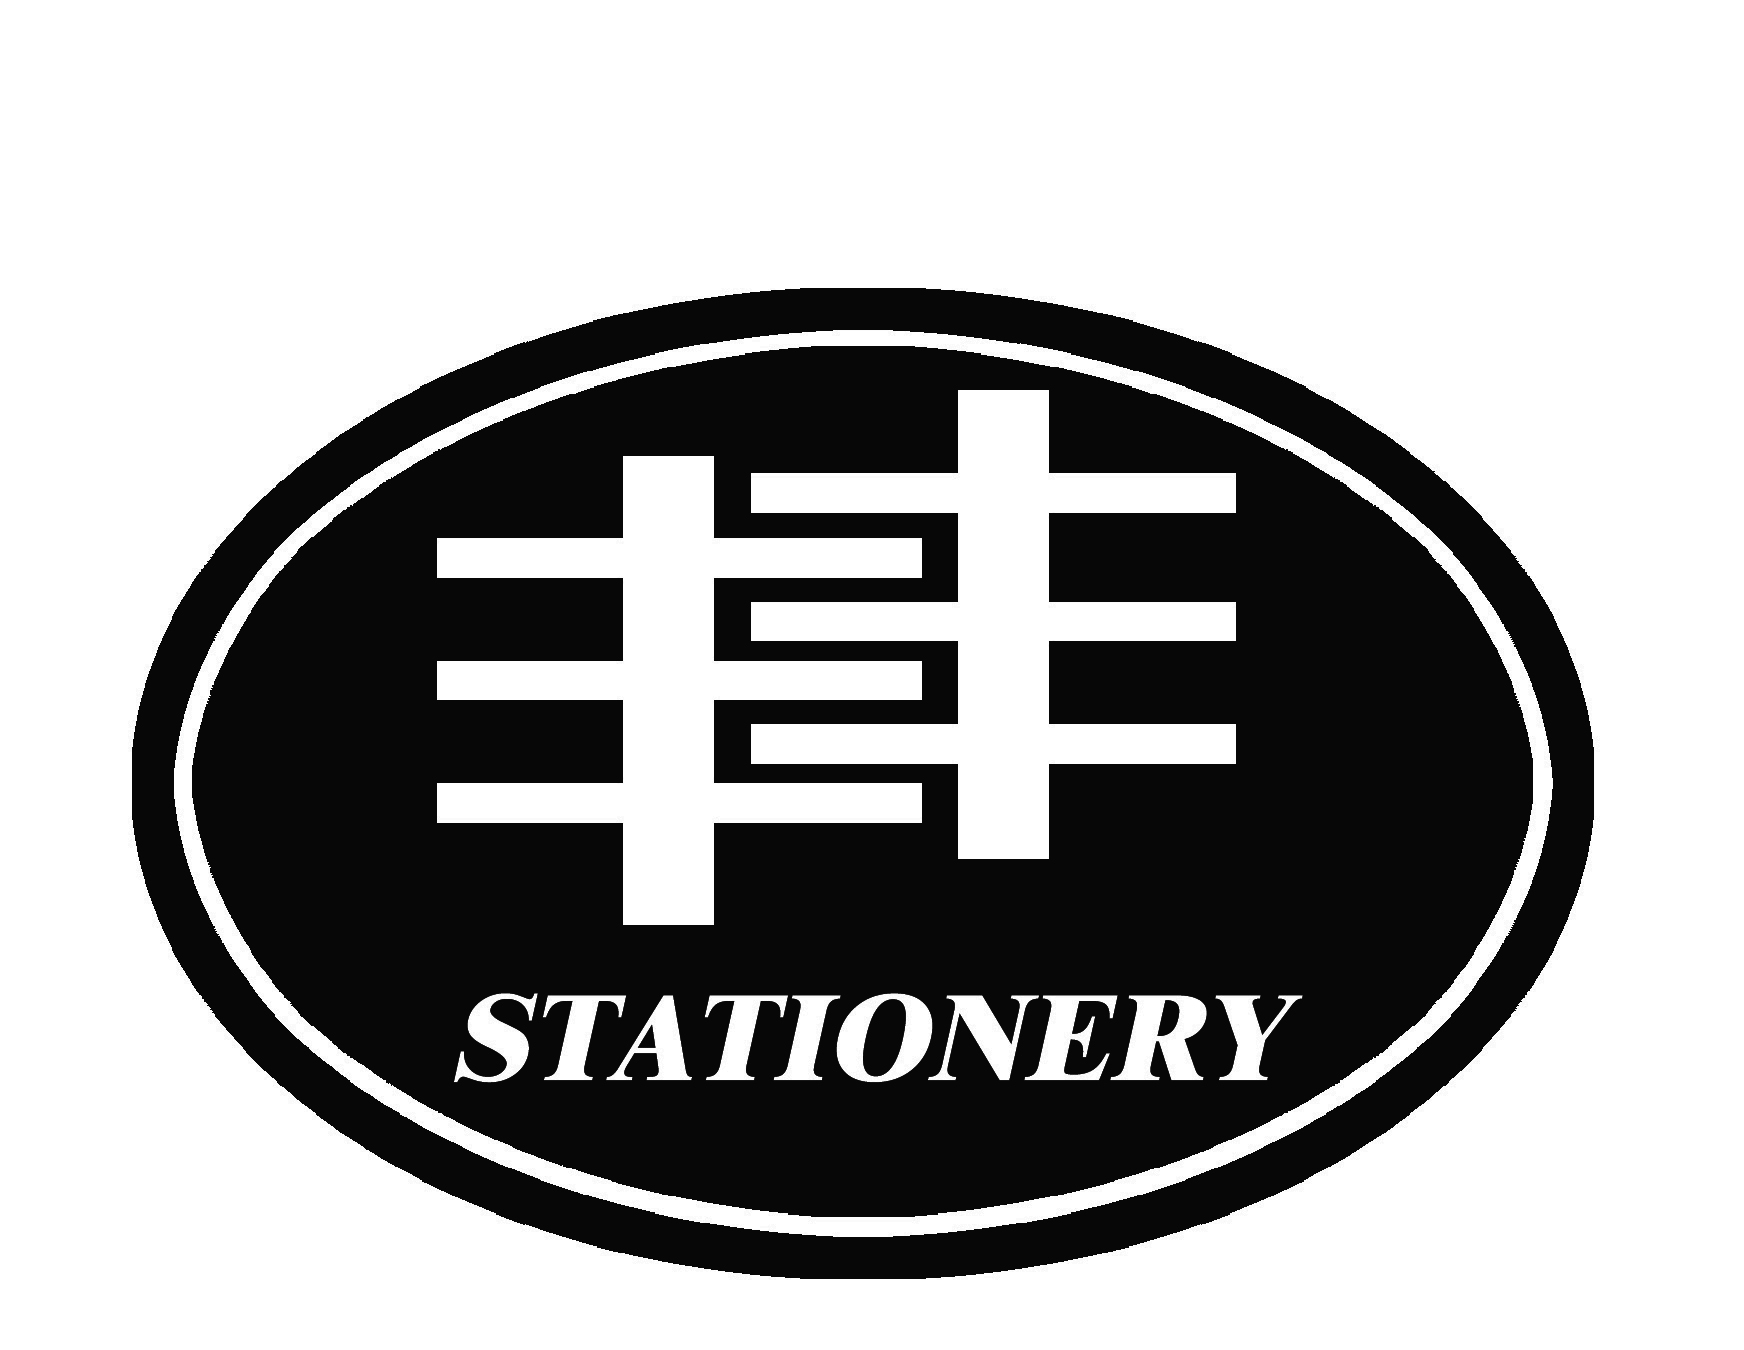 TianChang ShuangFeng Stationery CO.,LTD